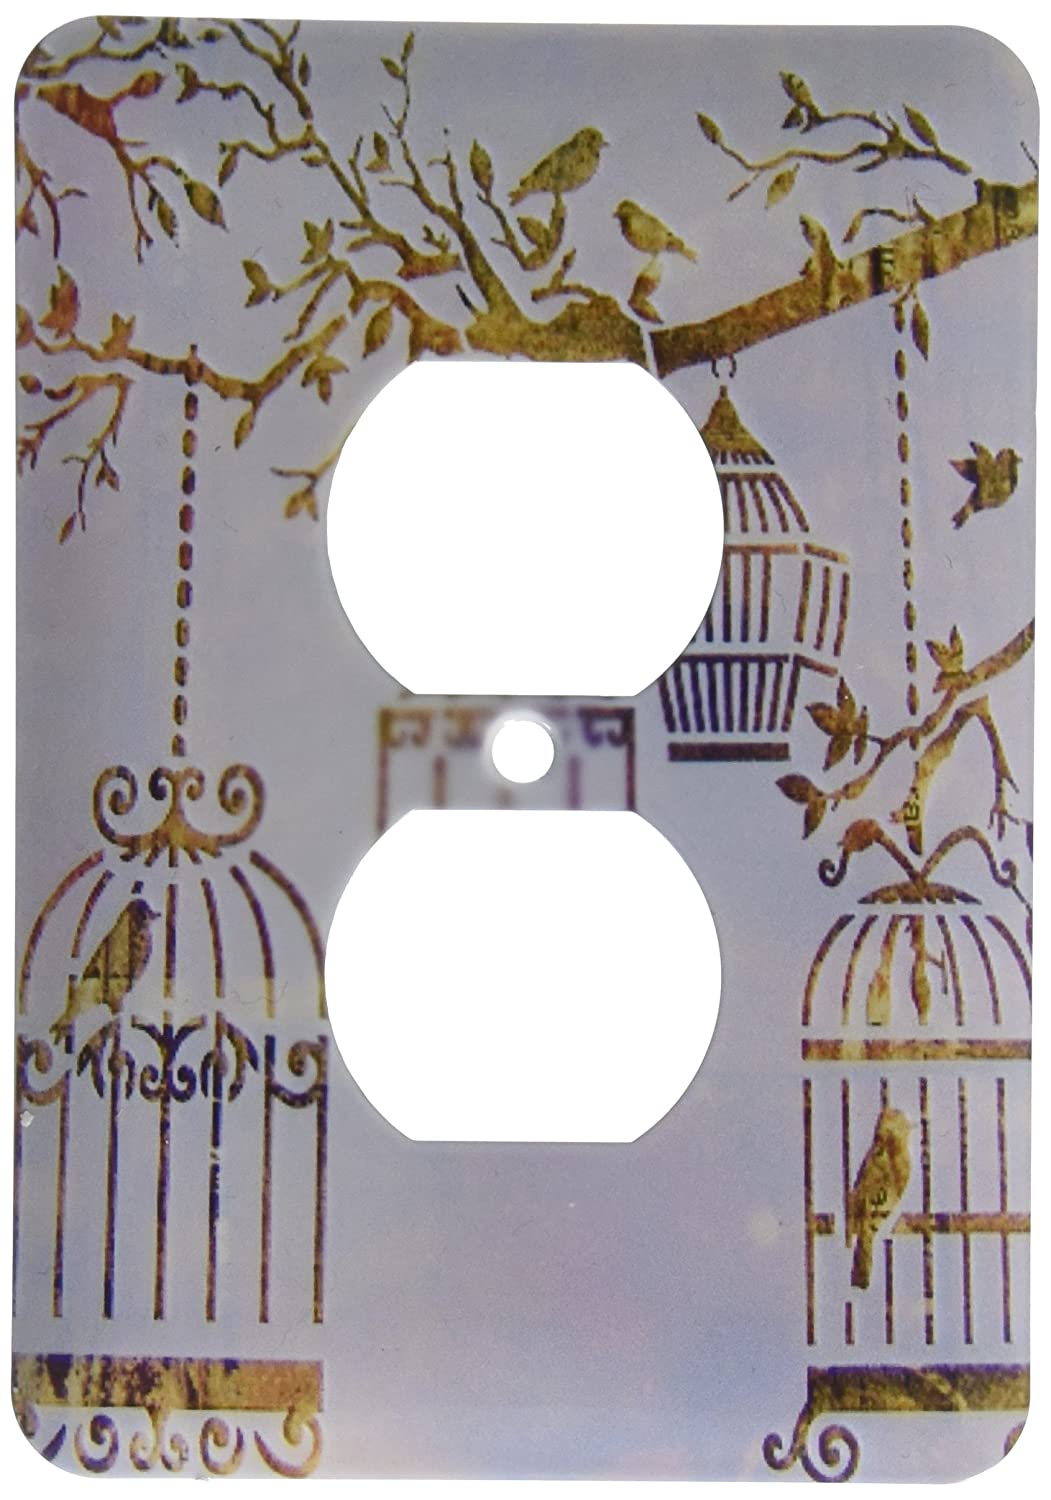 3dRose lsp/_163069/_6 Image of Birds and Bird Cages in Fall Colors and Tree Branch 2 Plug Outlet Cover